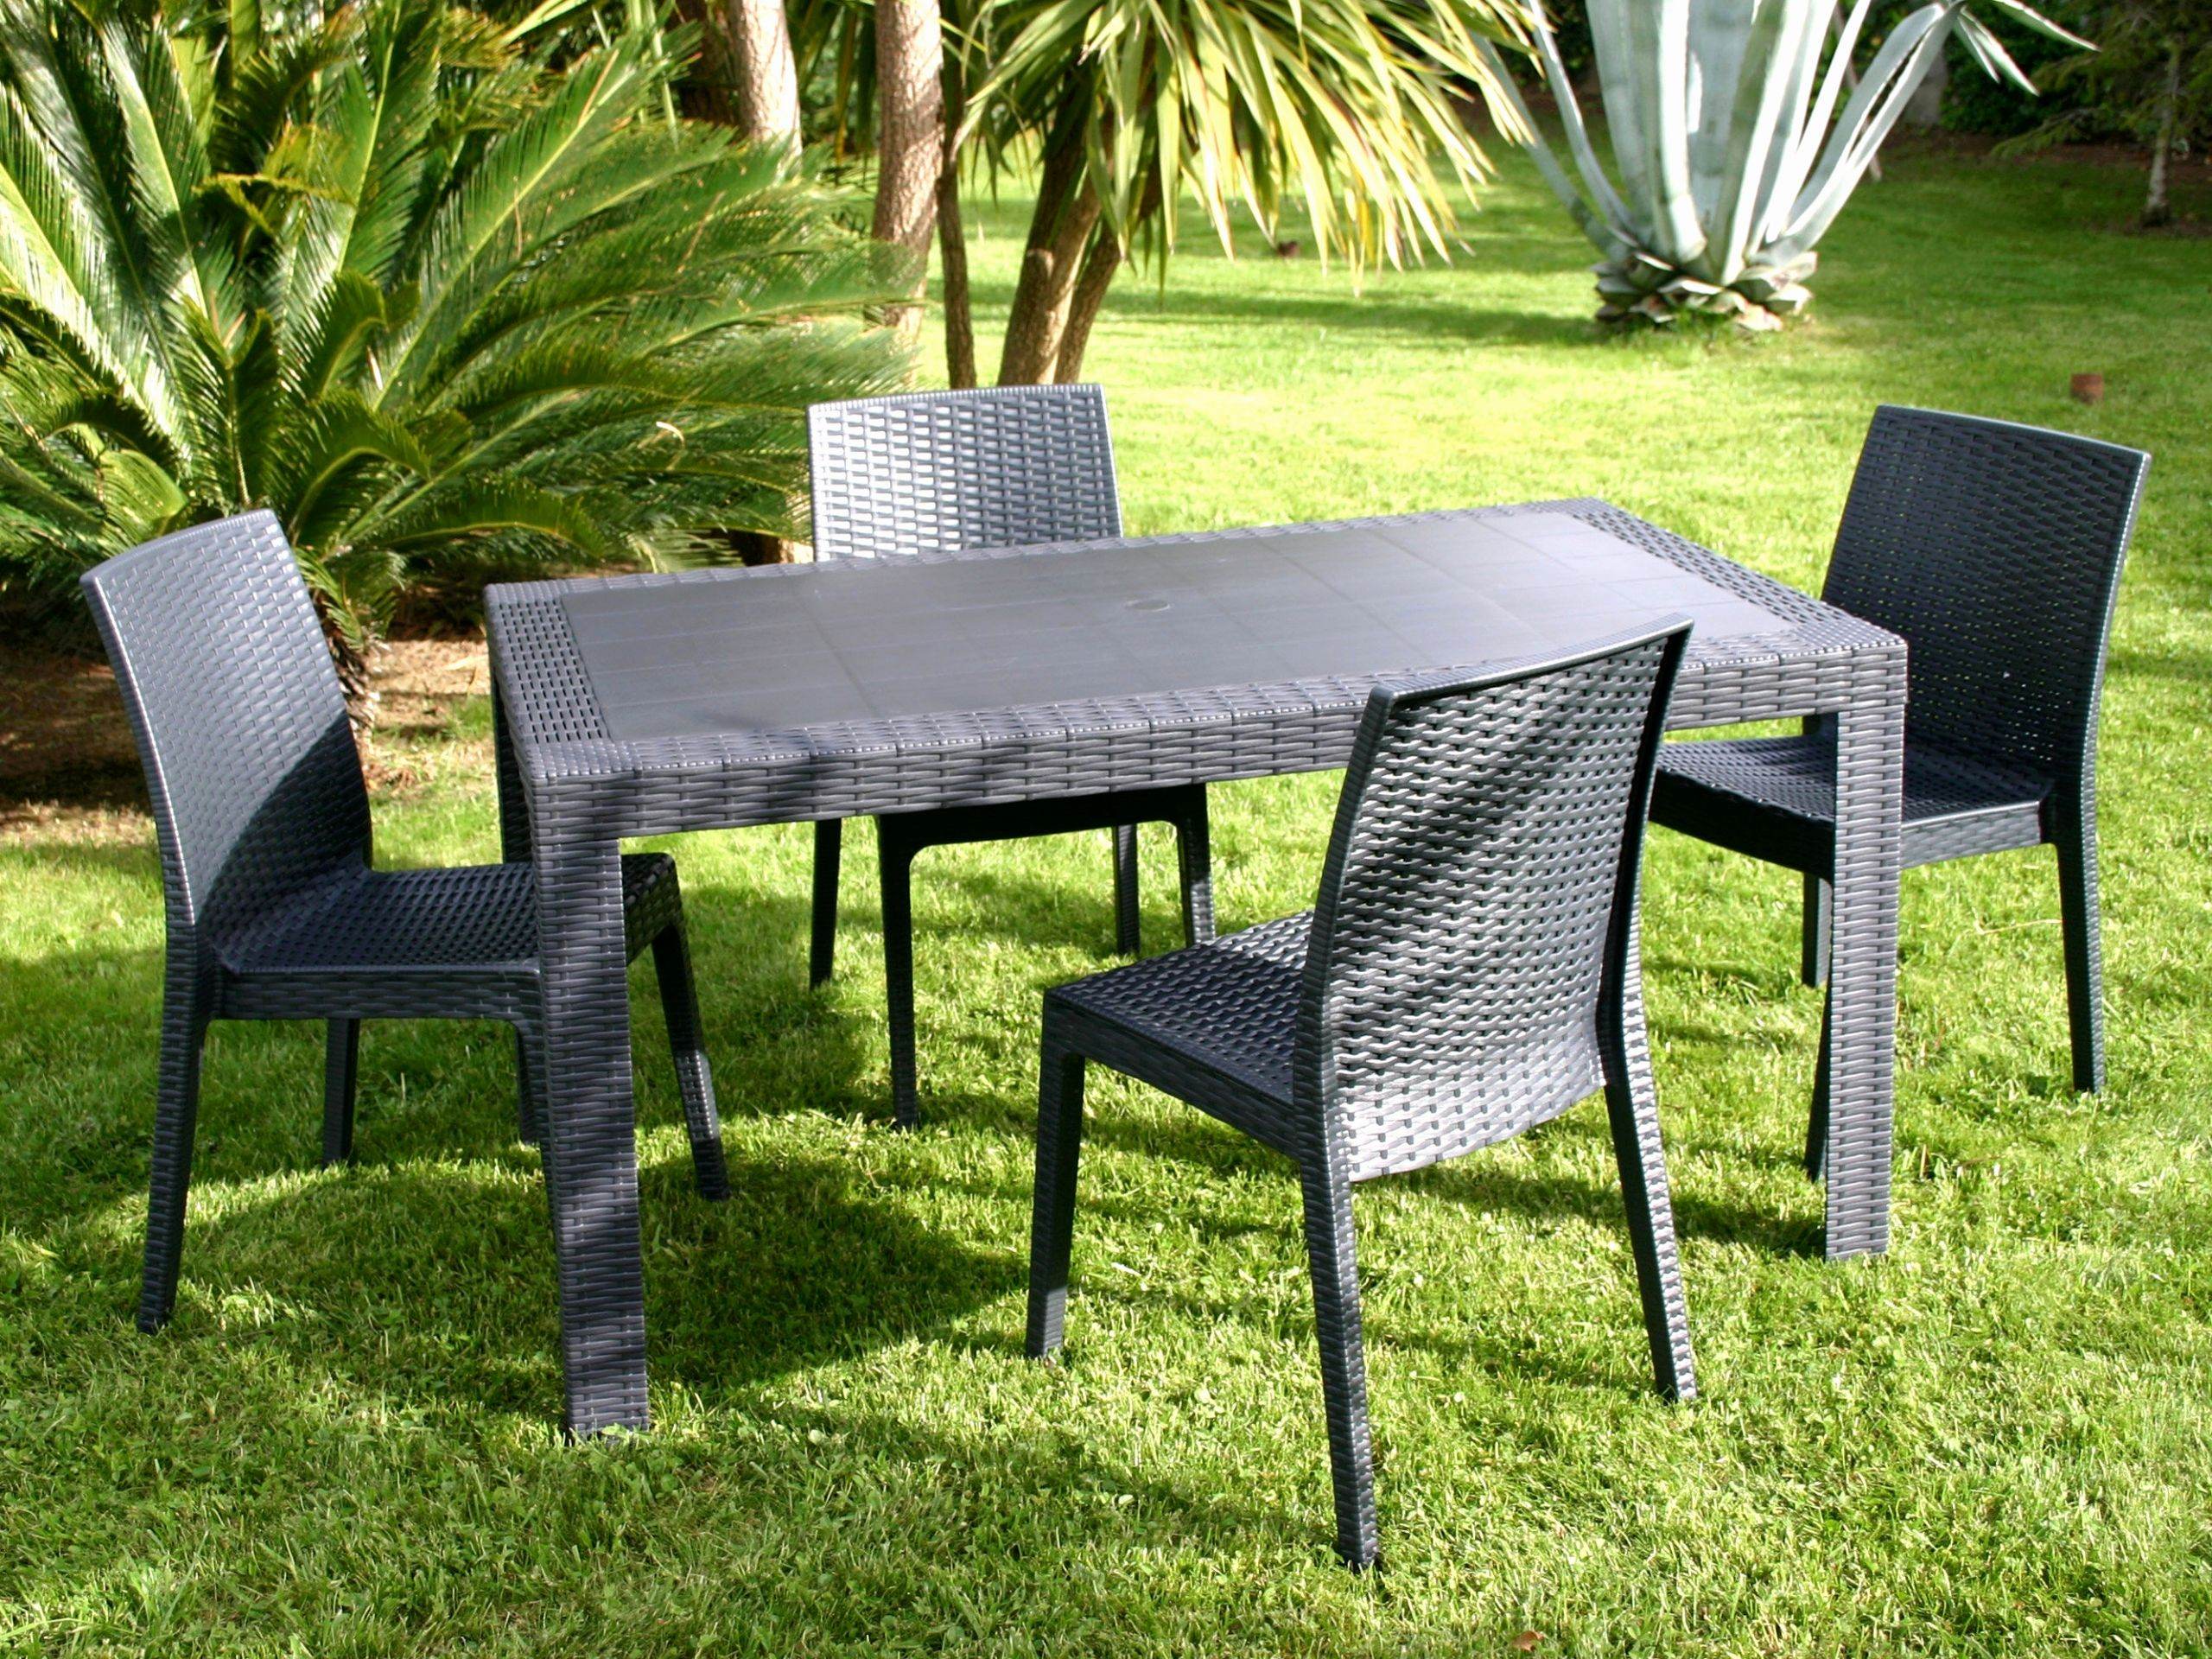 Table Exterieur Carrefour Best Of Catalogue Carrefour Abris ... concernant Transat Jardin Carrefour